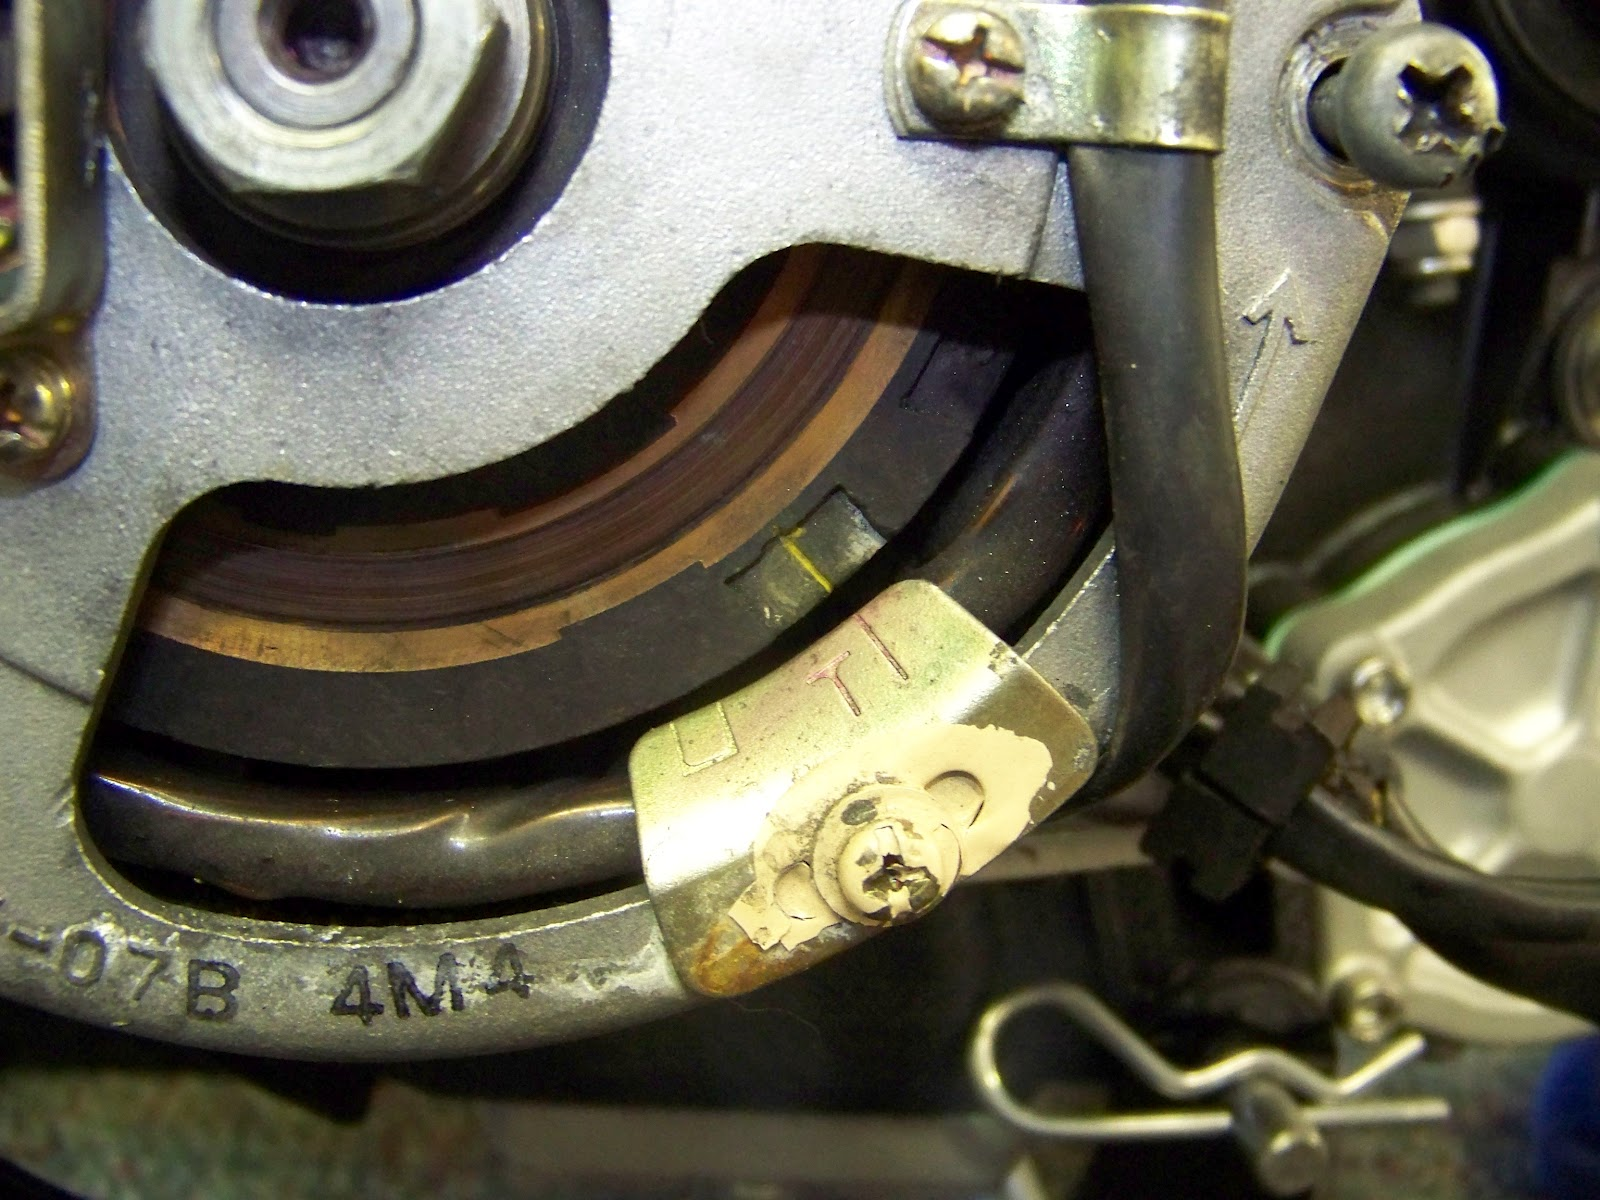 How To Pamcopete 277 Ignition Install Hughs Hand Built 1981 Xs650 Rephased Wiring Diagram If Using An Oem Charging System You Will Want Set The Mark On Rotor T Alternator Like Below